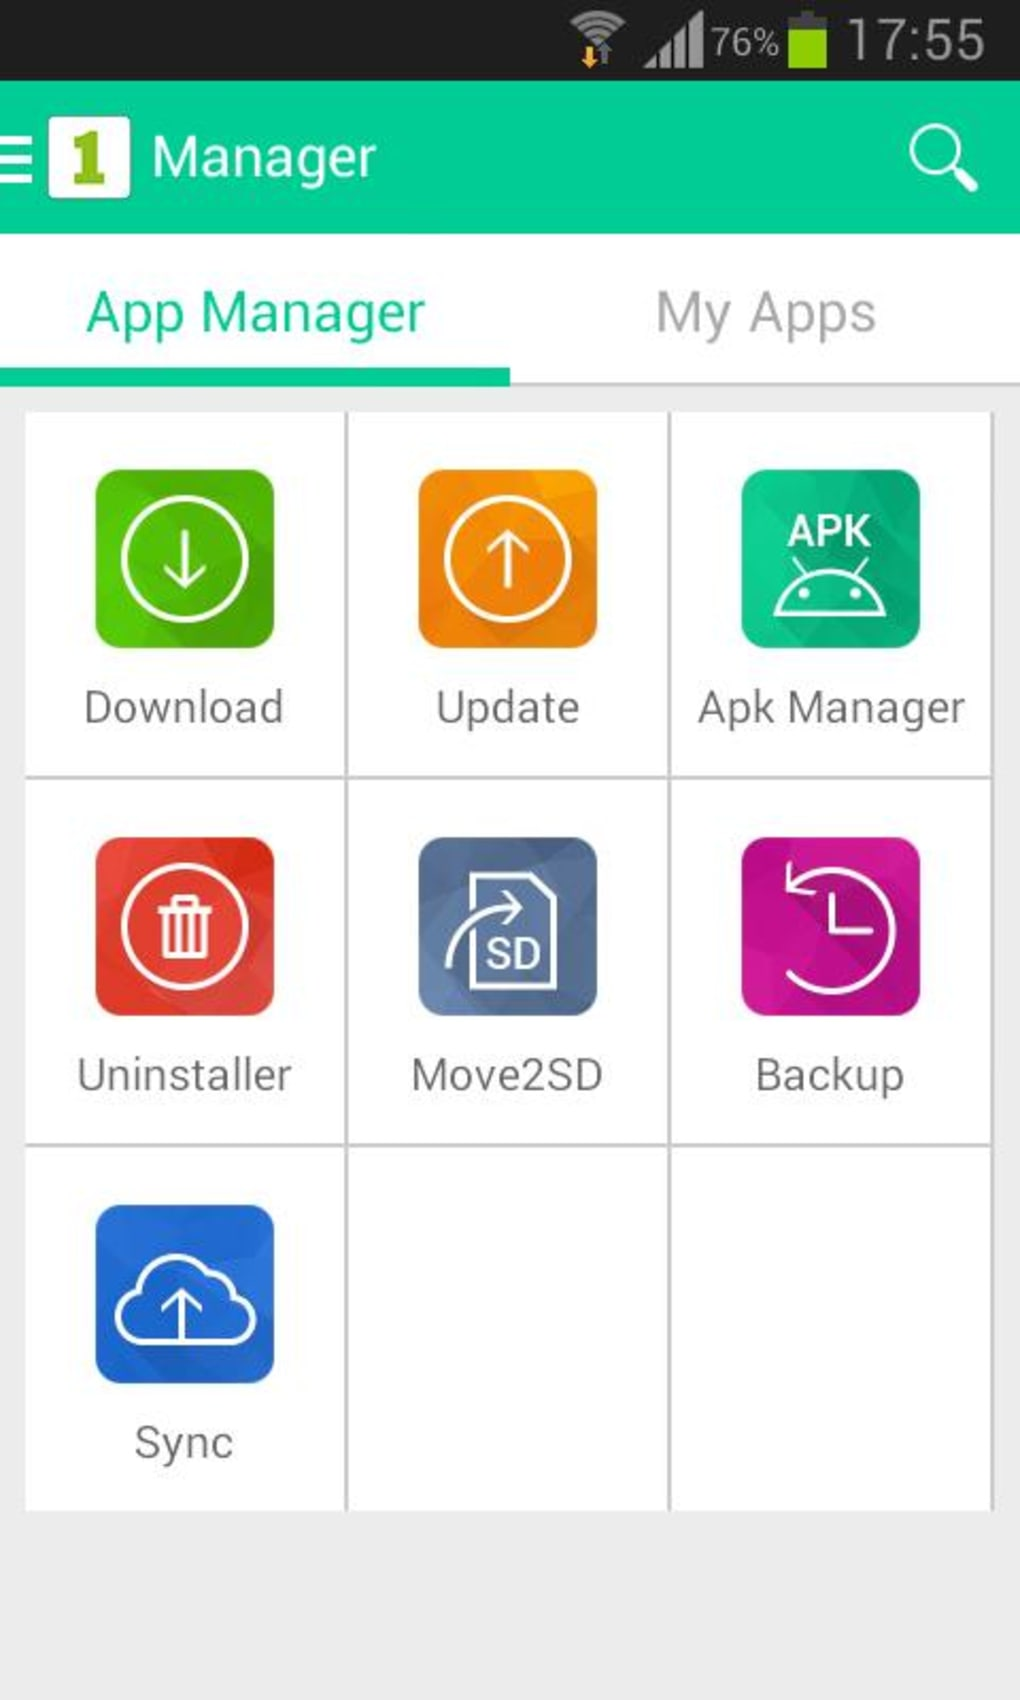 1Mobile Market App - Free Store of Android Apps and Games